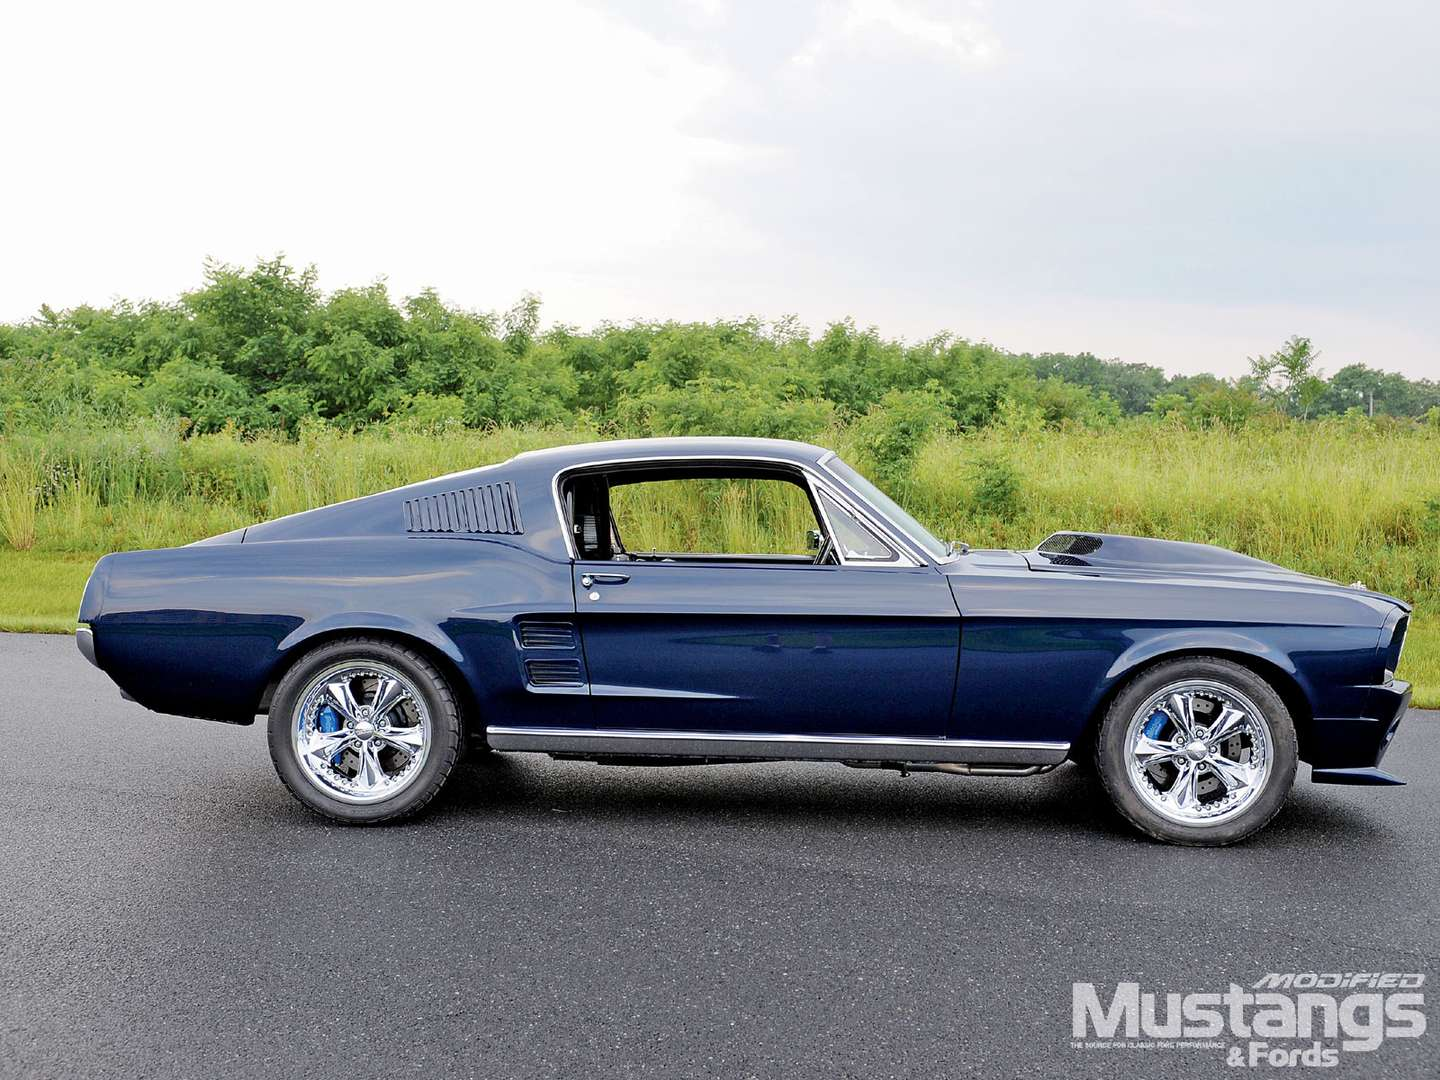 Ford Mustang fastback #9196178